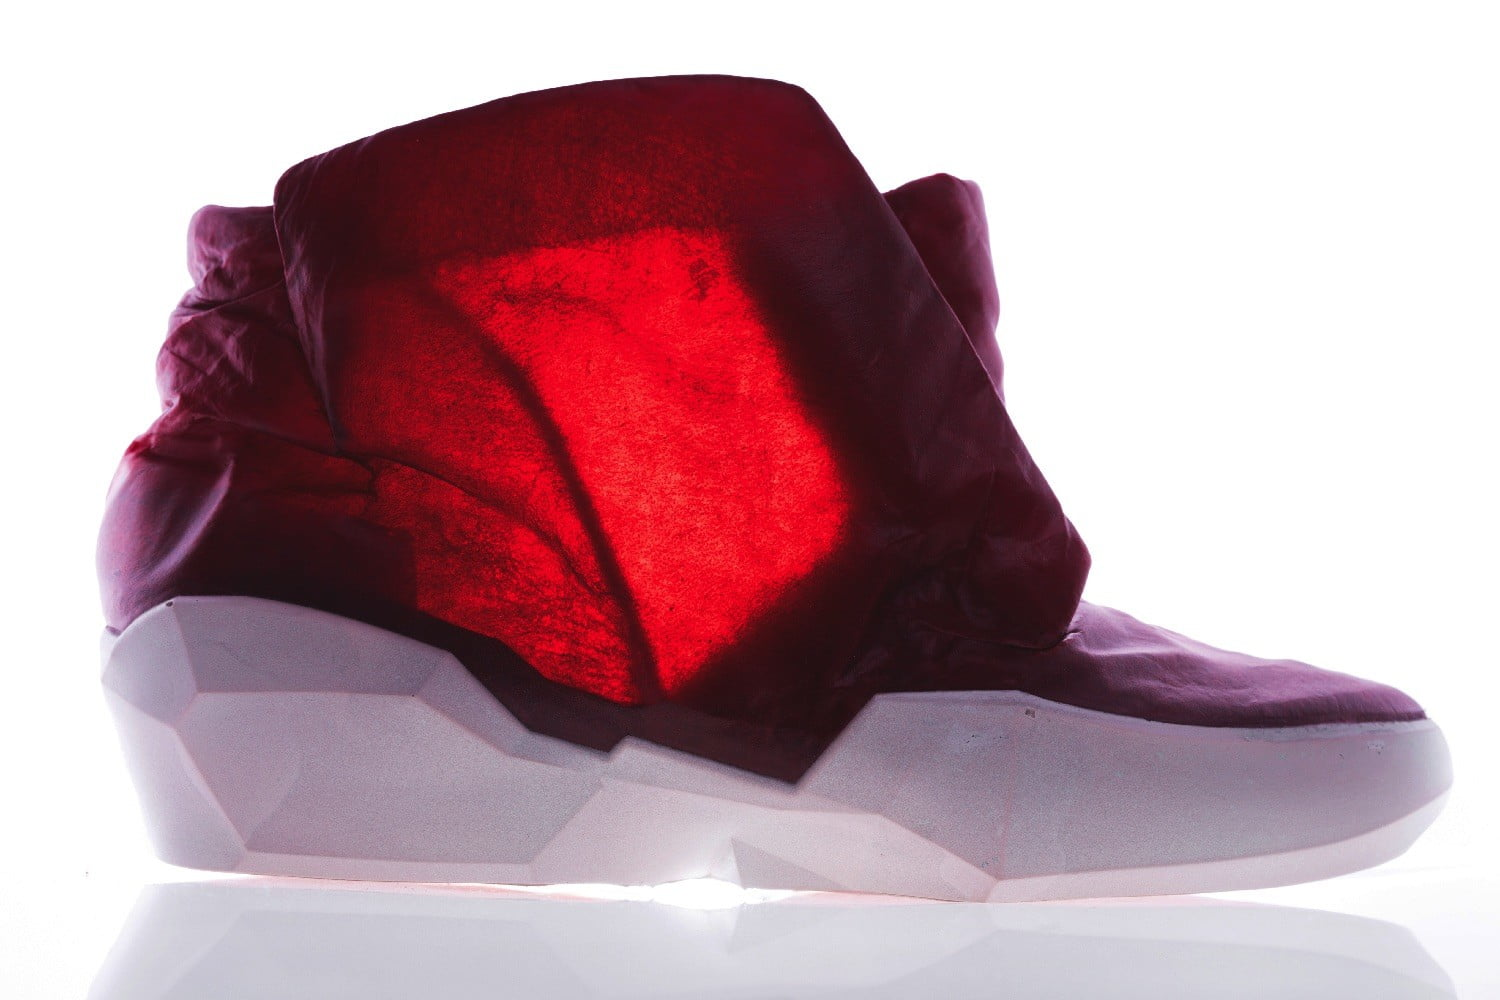 colorful transparent leather cowskin ecco apparition boot blood red side glow